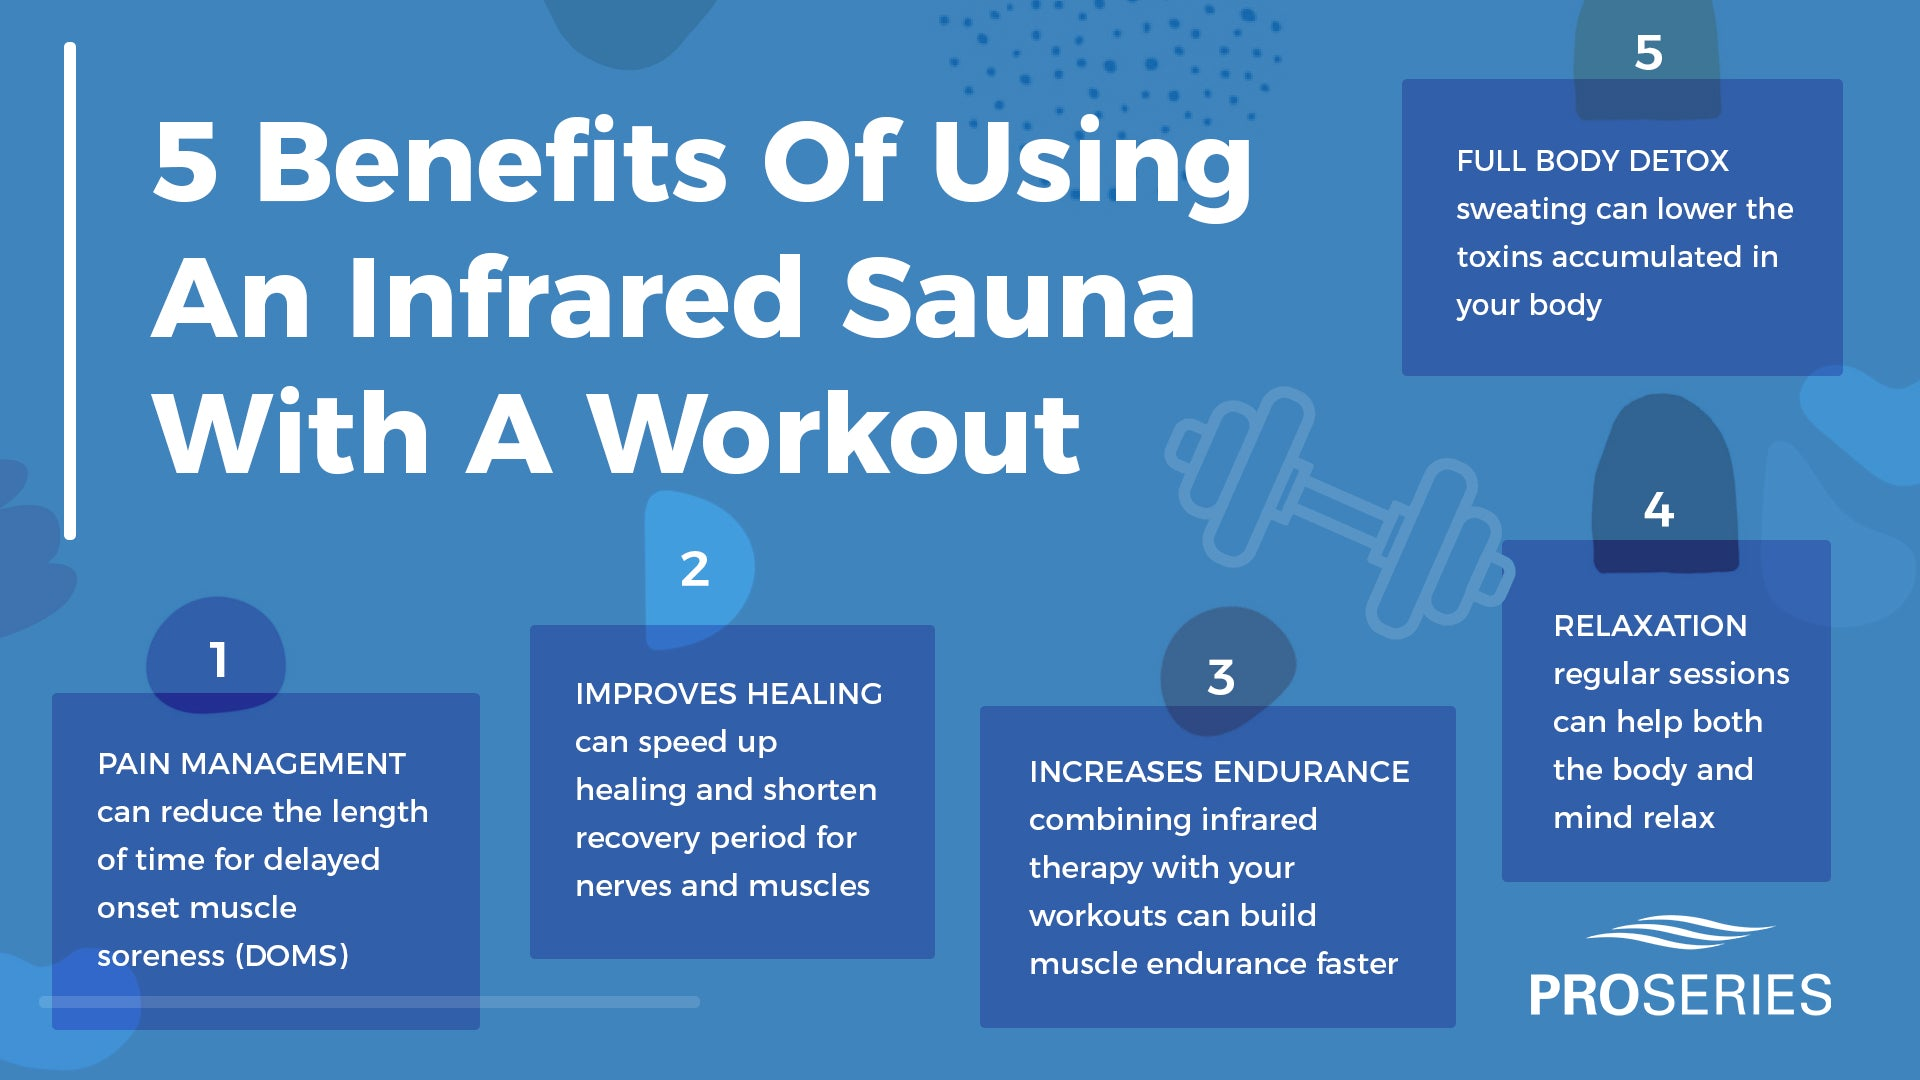 5 Benefits Of Using An Infrared Sauna With A Workout 1. Pain Management - can reduce the length of time for delayed onset muscle soreness (DOMS) 2. Improves Healing - can speed up healing and shorten recovery period for nerves and muscles 3. Increases Endurance - combining infrared therapy with your workouts can build muscle endurance faster 4. Relaxation - regular sessions can help both the body and mind relax 5. Full Body Detox - sweating can lower the toxins accumulated in your body